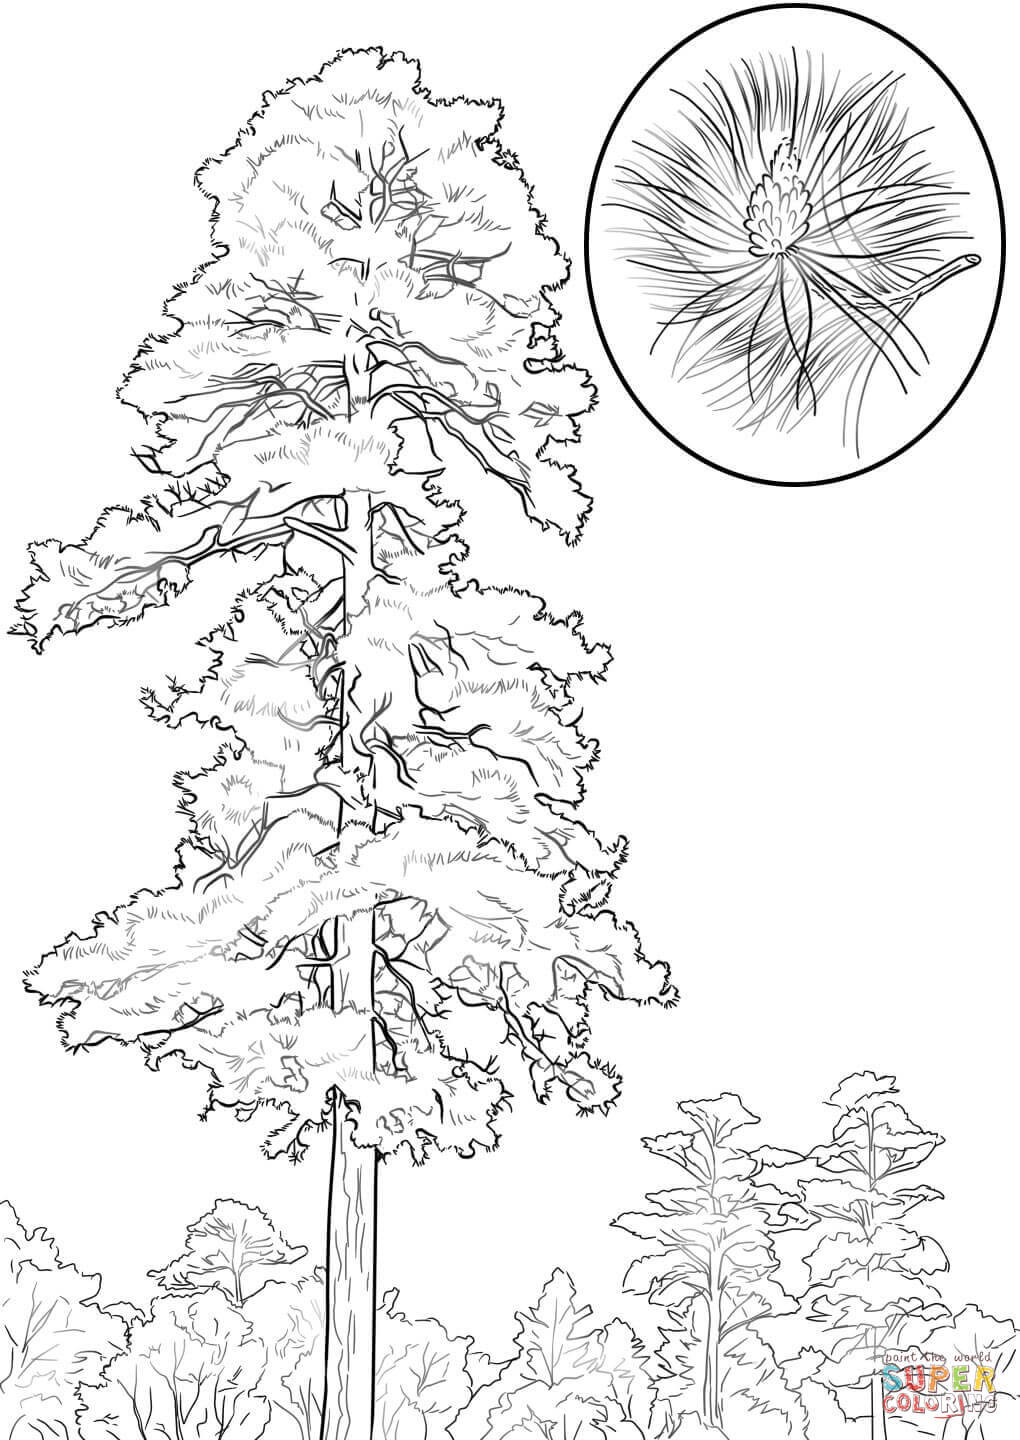 Tree Coloring Pages Free Printable At Getdrawings Com Free For